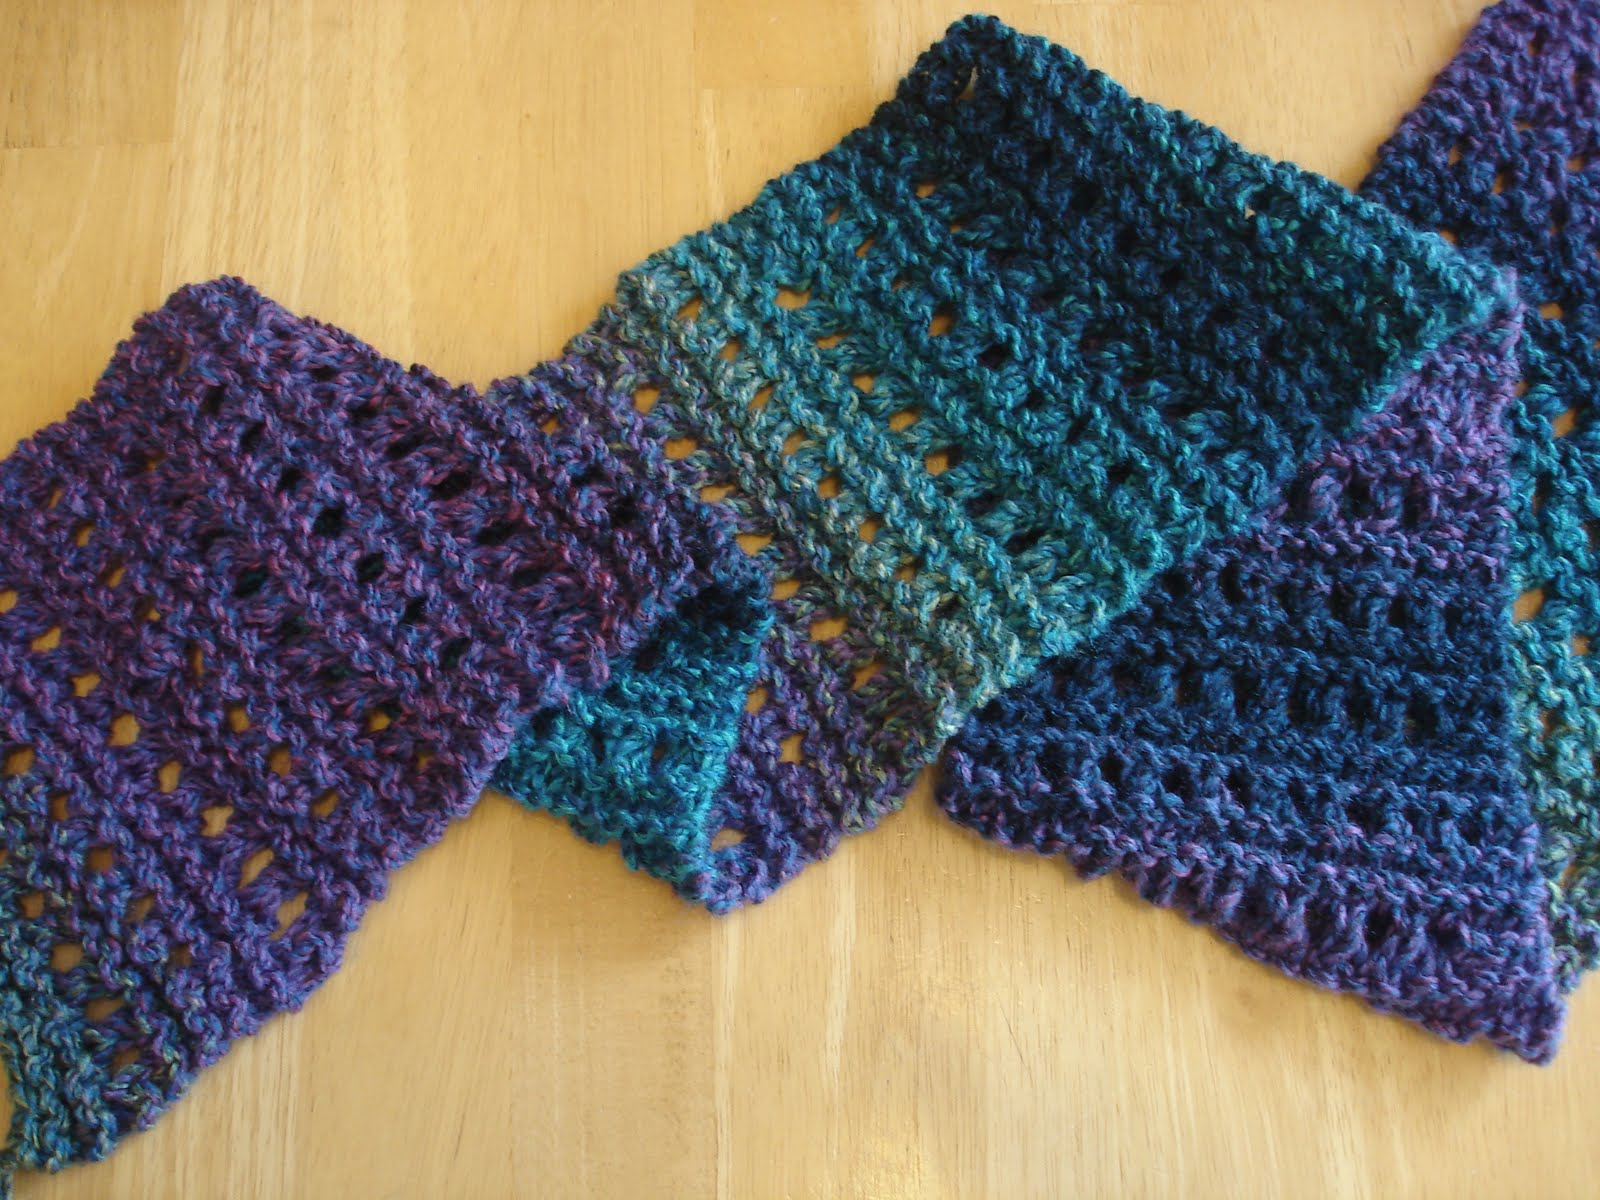 Knitting A Scarf Pattern : Six new free patterns knit crochet scarves